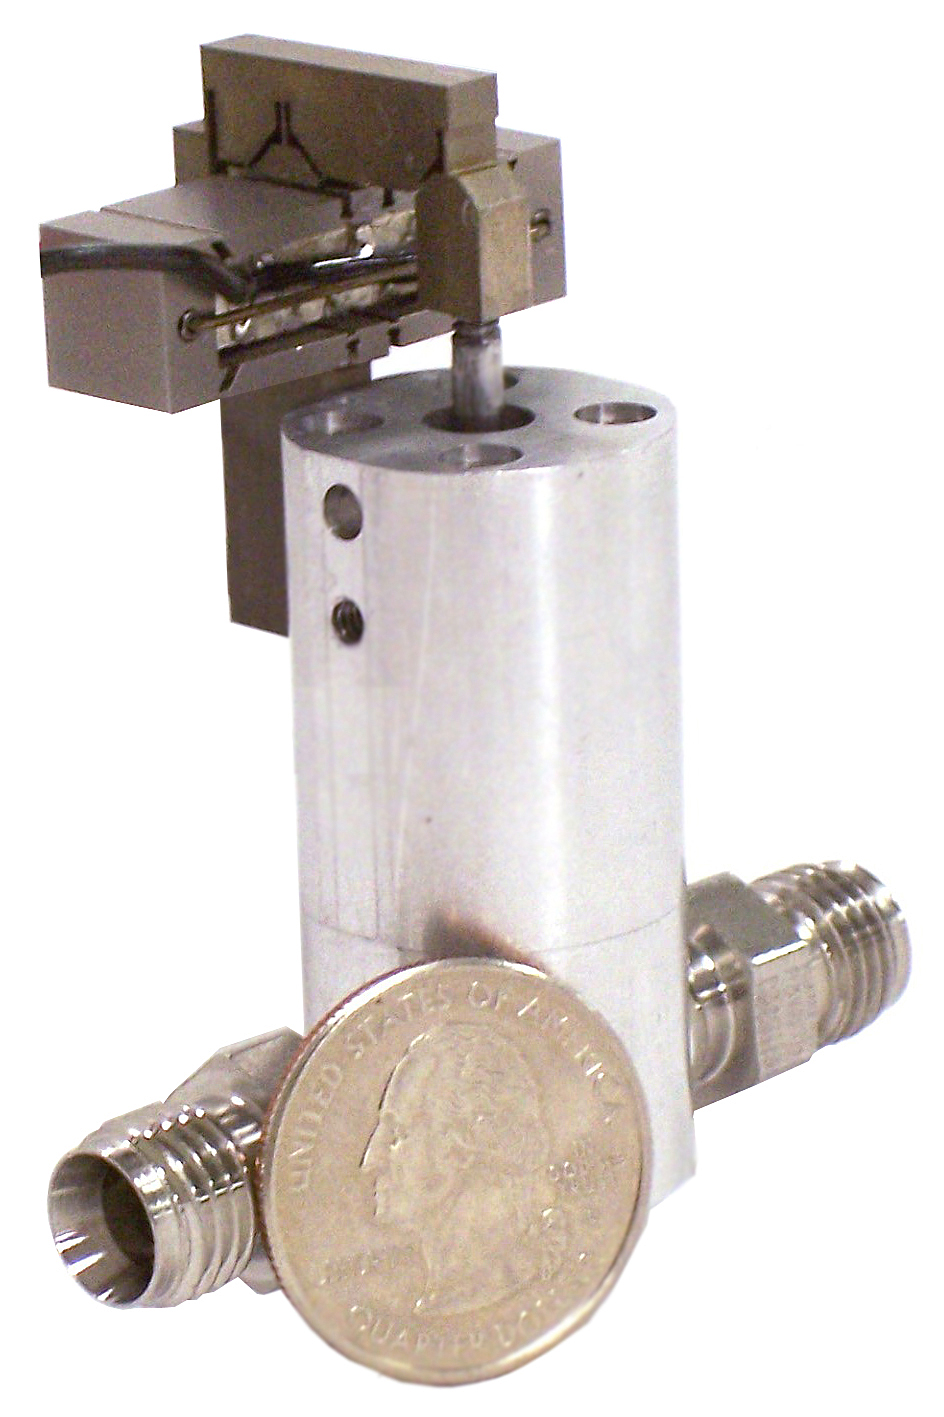 Scale of valve controlled by piezo actuator.